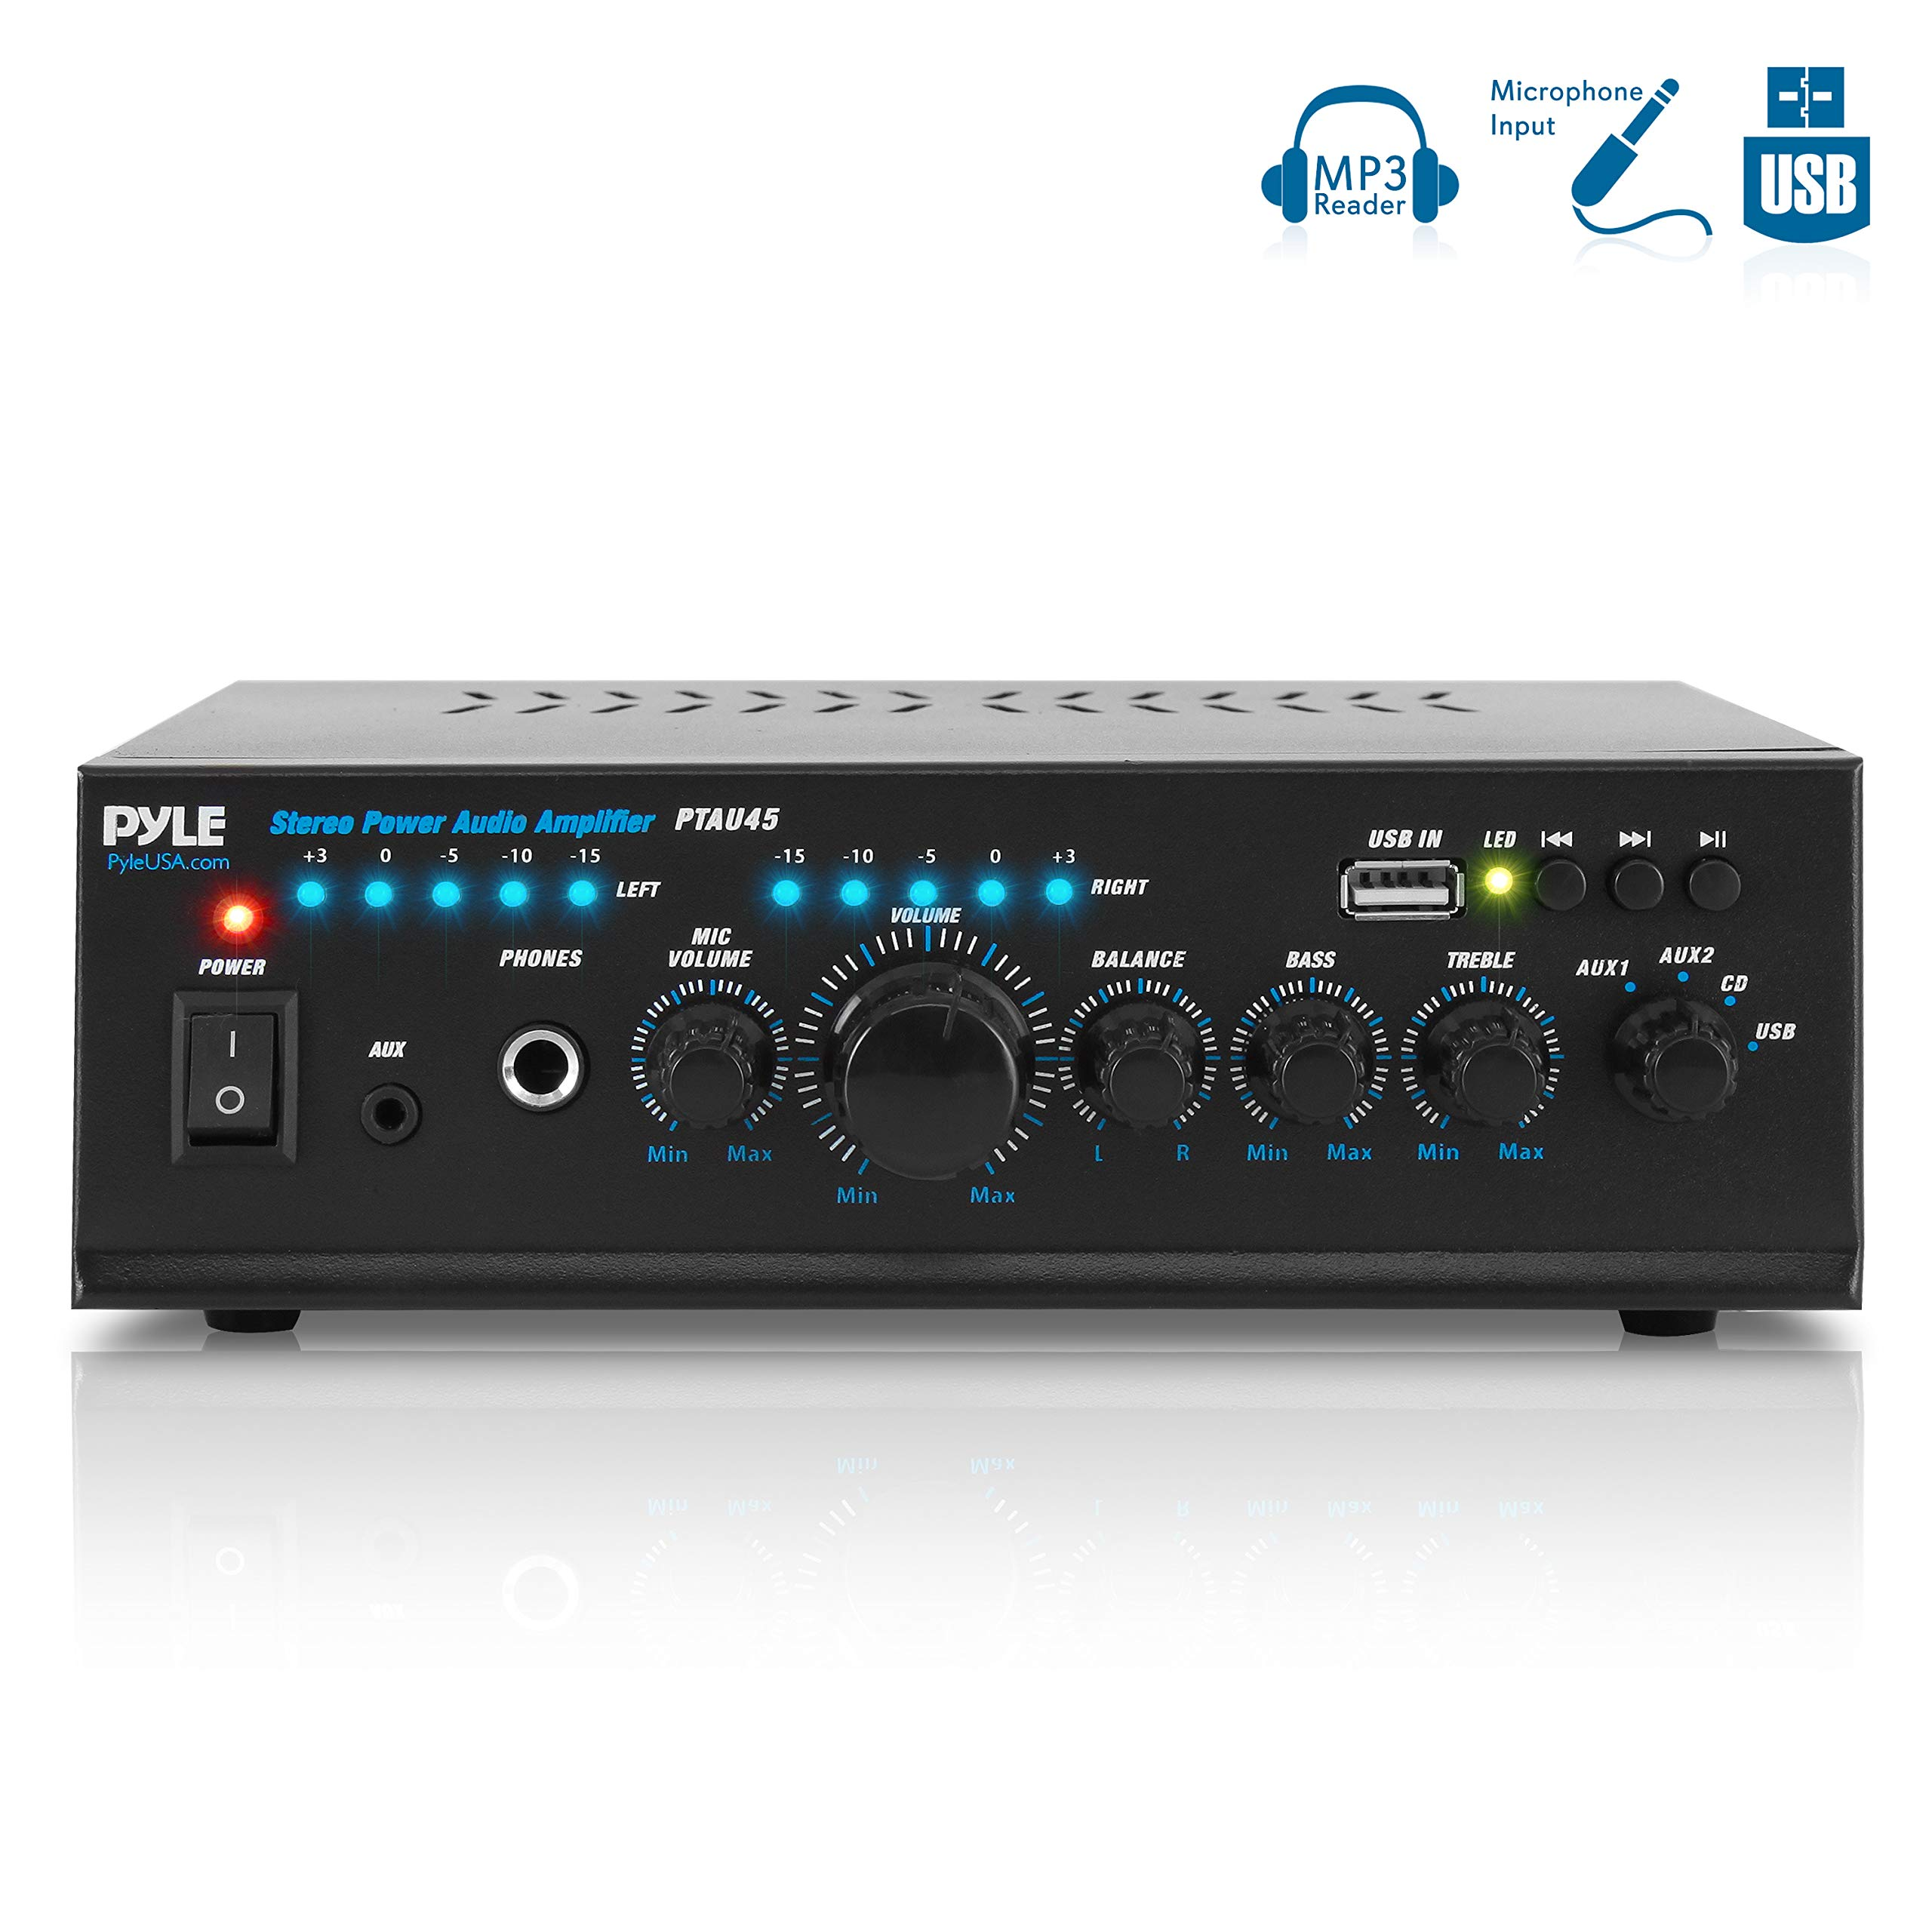 Pyle 2X120 Watt Home Audio Power Amplifier - Portable 2 Channel Surround Sound Stereo Receiver w/ USB in - for Amplified Subwoofer Speaker, CD DVD, MP3, iPhone, Phone, Theater, PA System - PTAU45